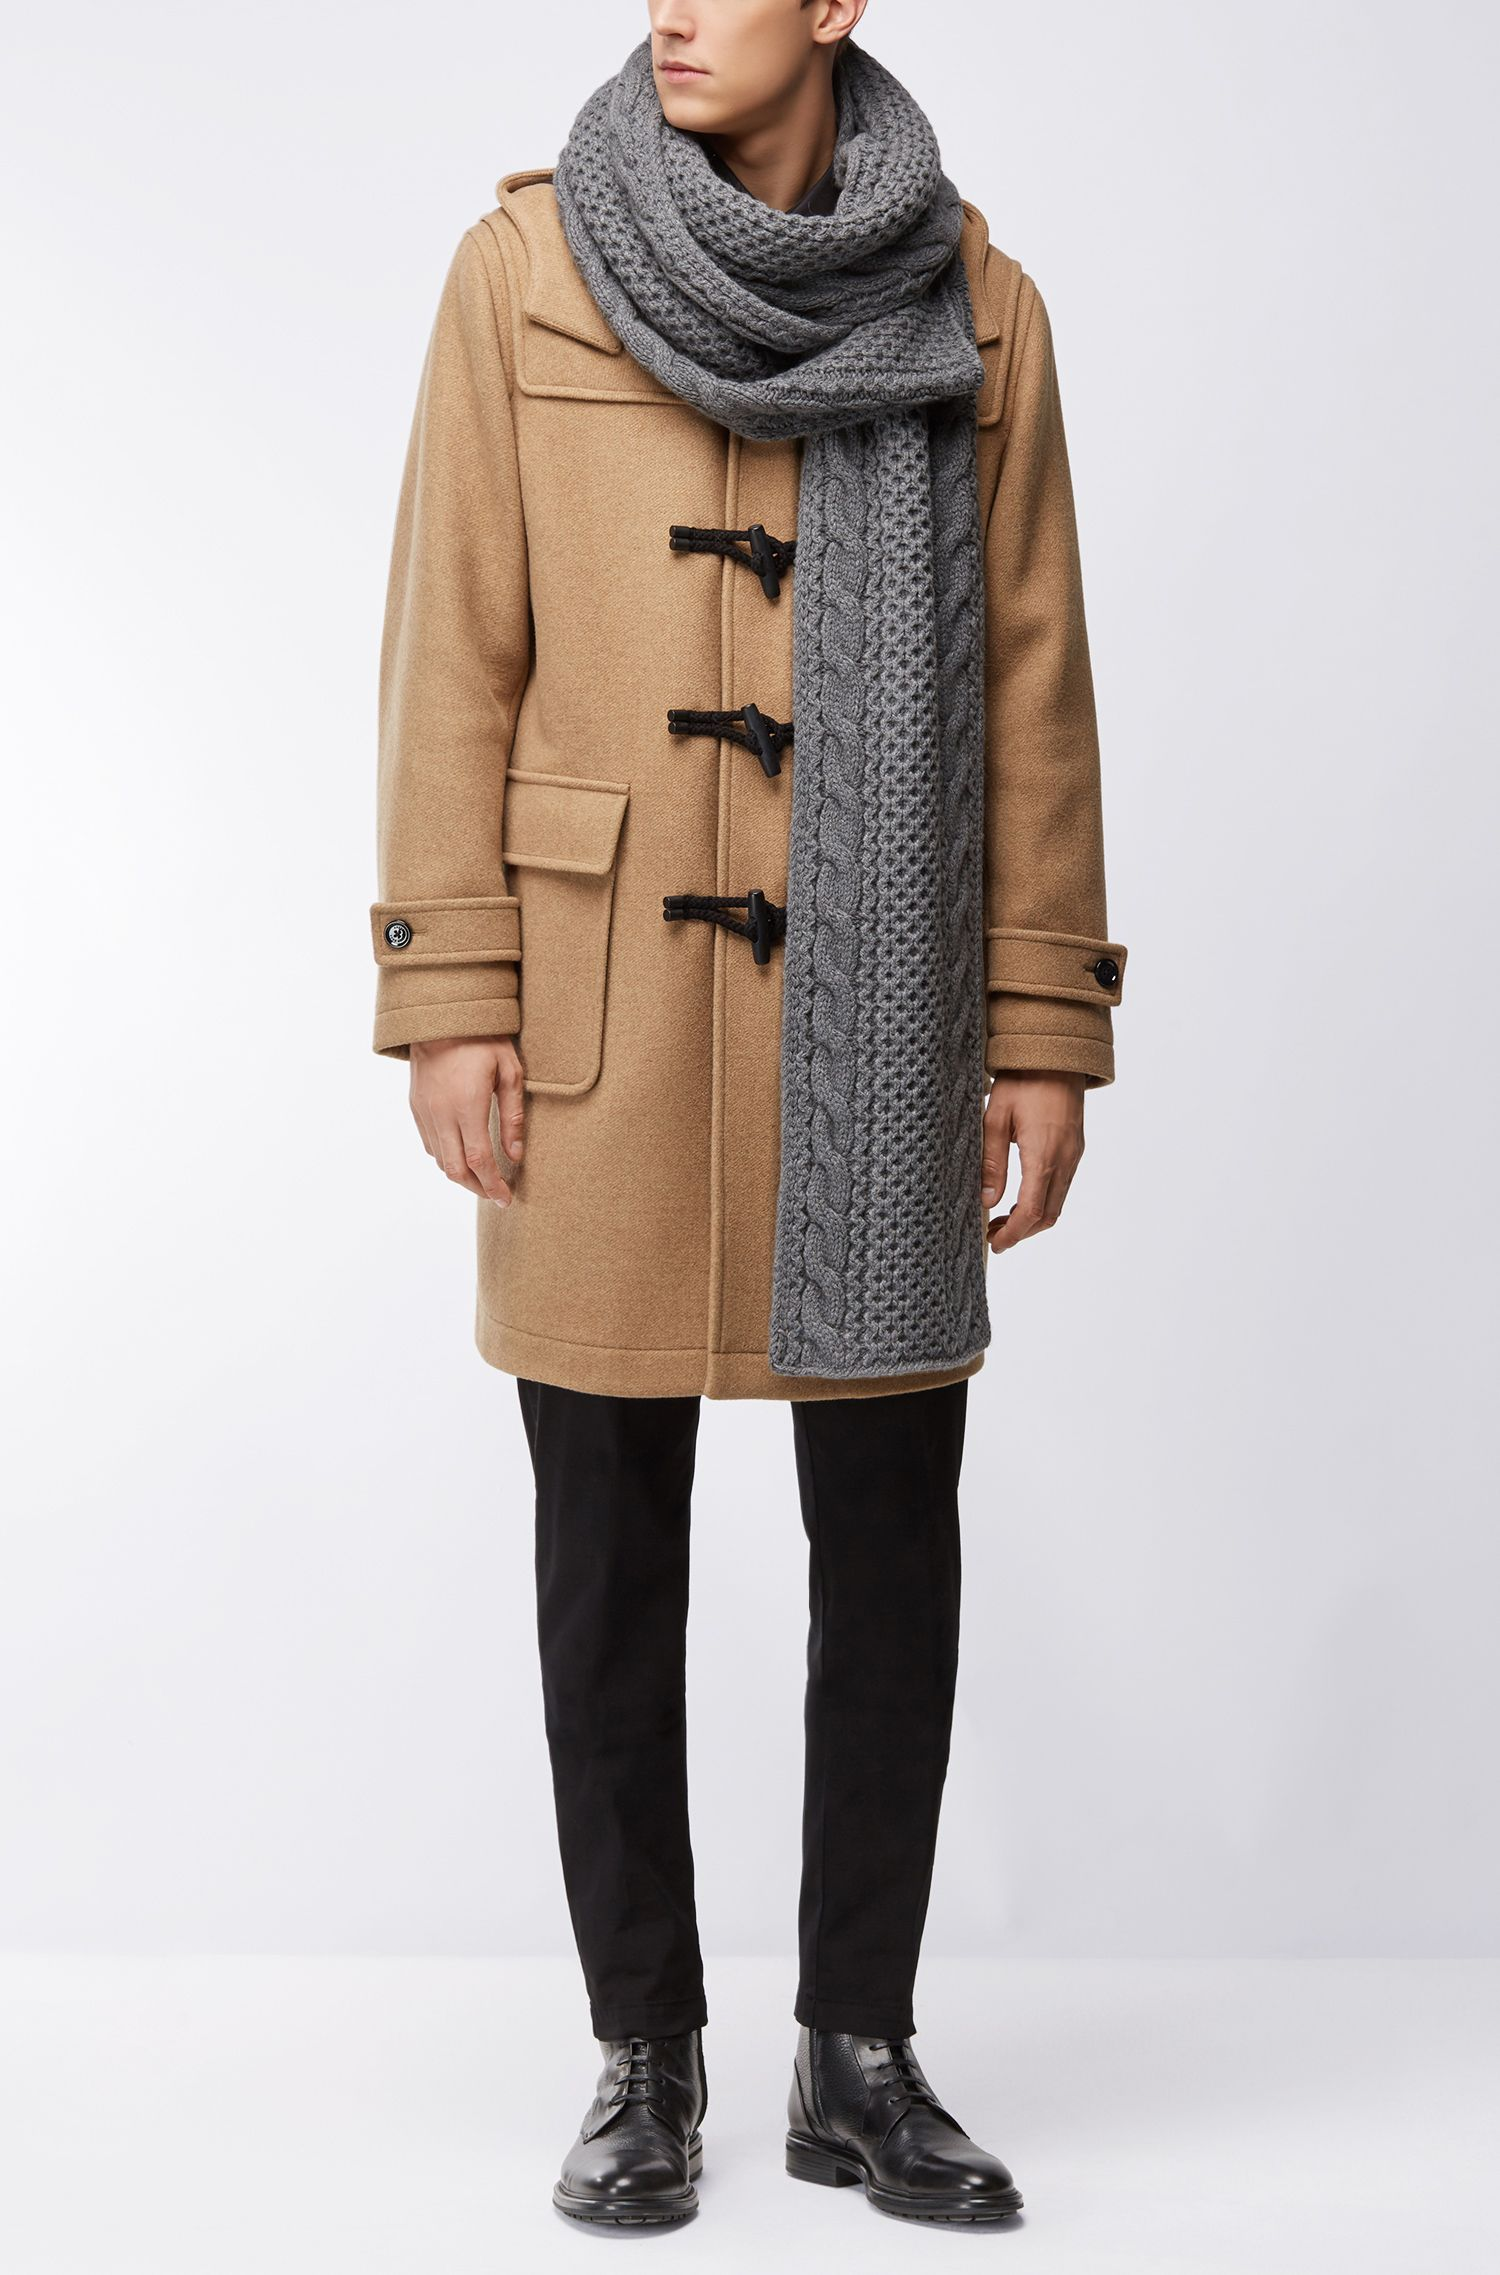 Cashmere Wool Cable Knit Scarf | Marno AM